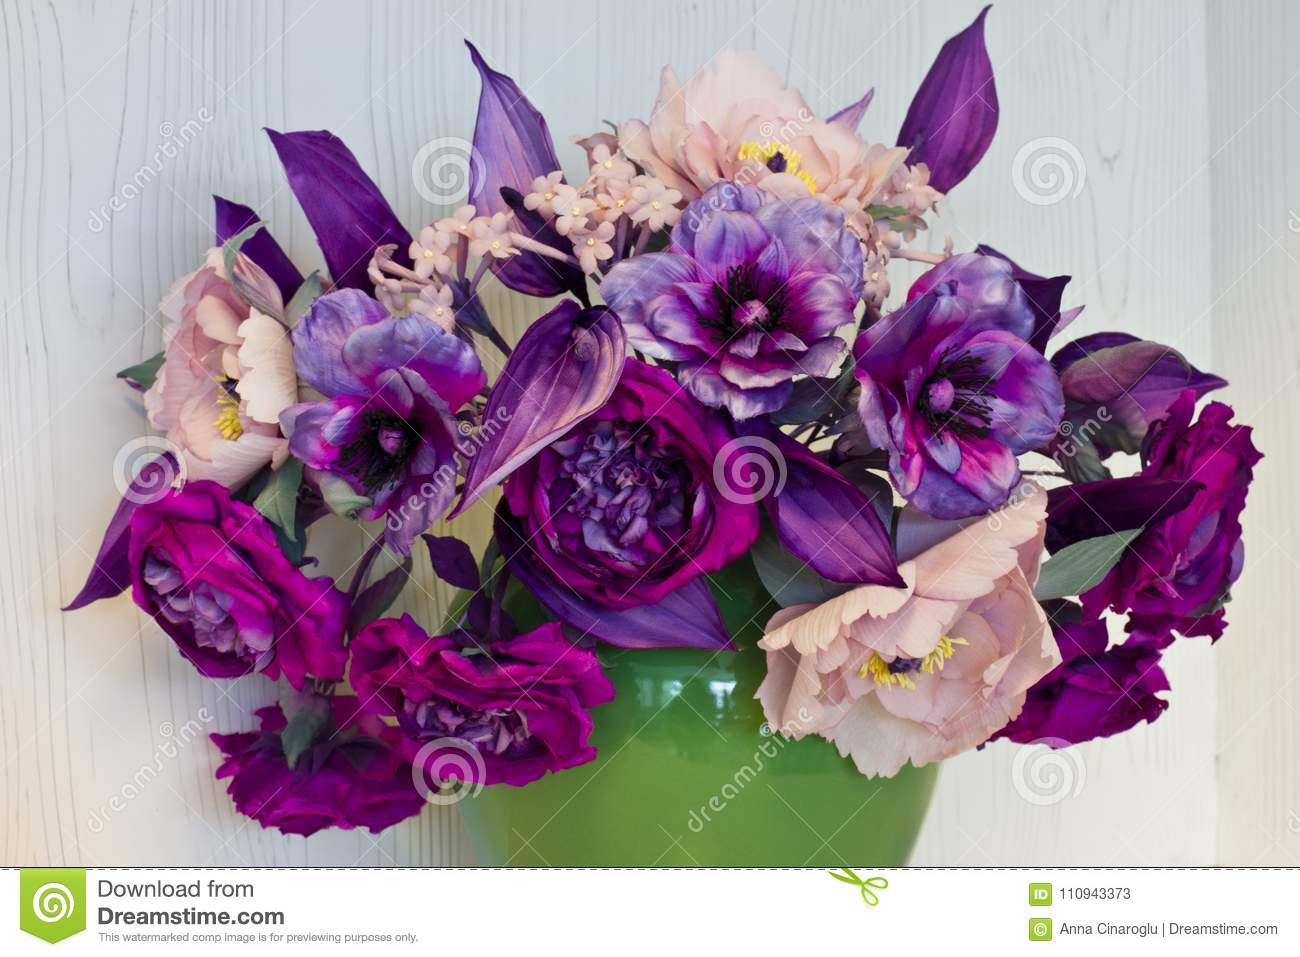 Bouquet of pink and purple peonies artificial flowers made of s bouquet of pink and purple peonies artificial flowers made of silk in the black vase mightylinksfo